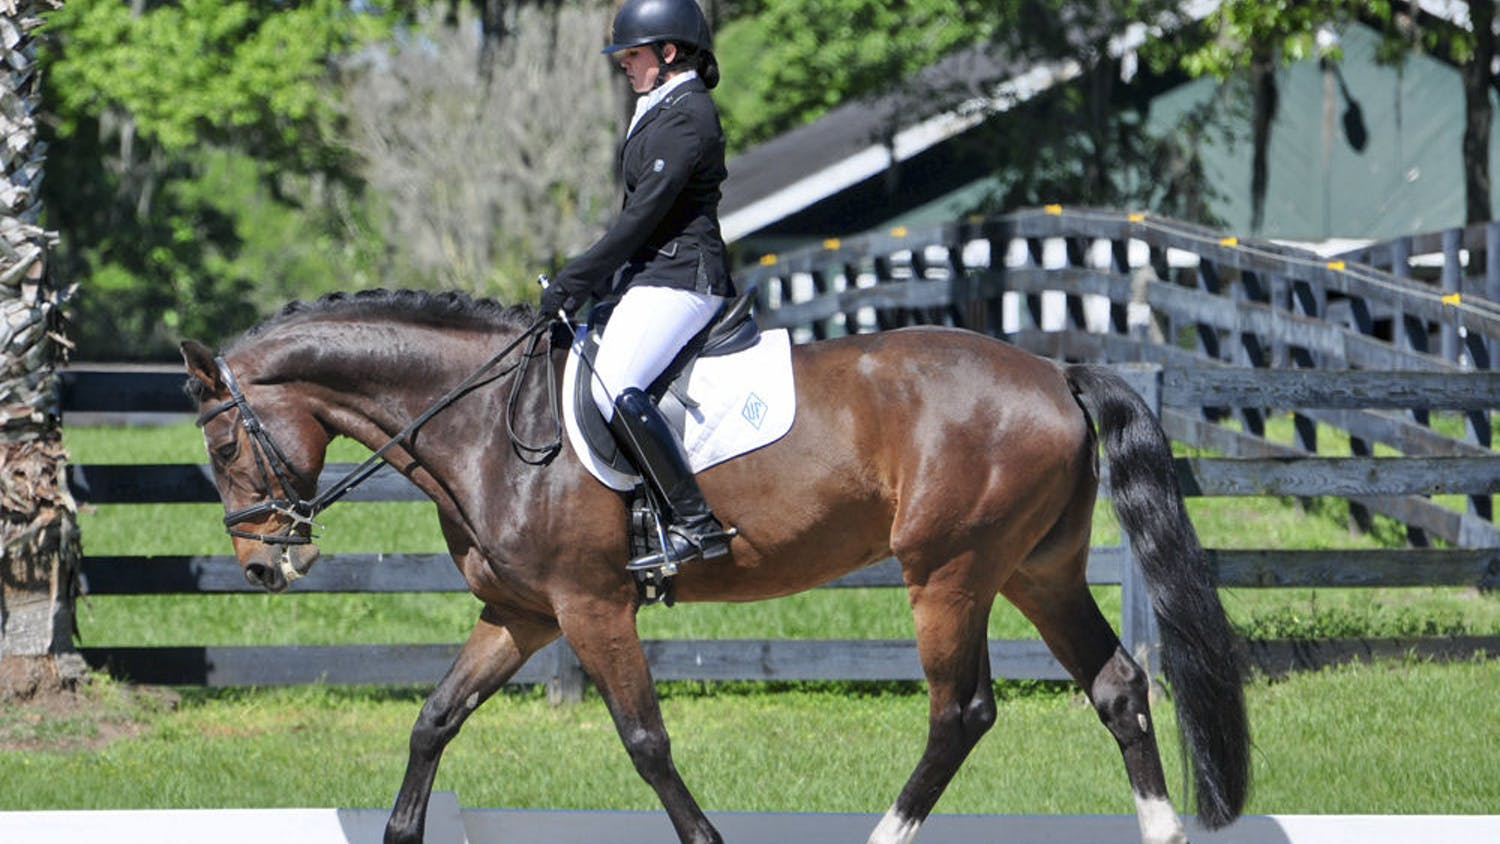 Alexis Rossetti, a 19-year-old UF political science and international studies sophomore, is one of five UF students who will compete in the Intercollegiate Dressage Association's 2016 National Championship in New Jersey on Saturday and Sunday.